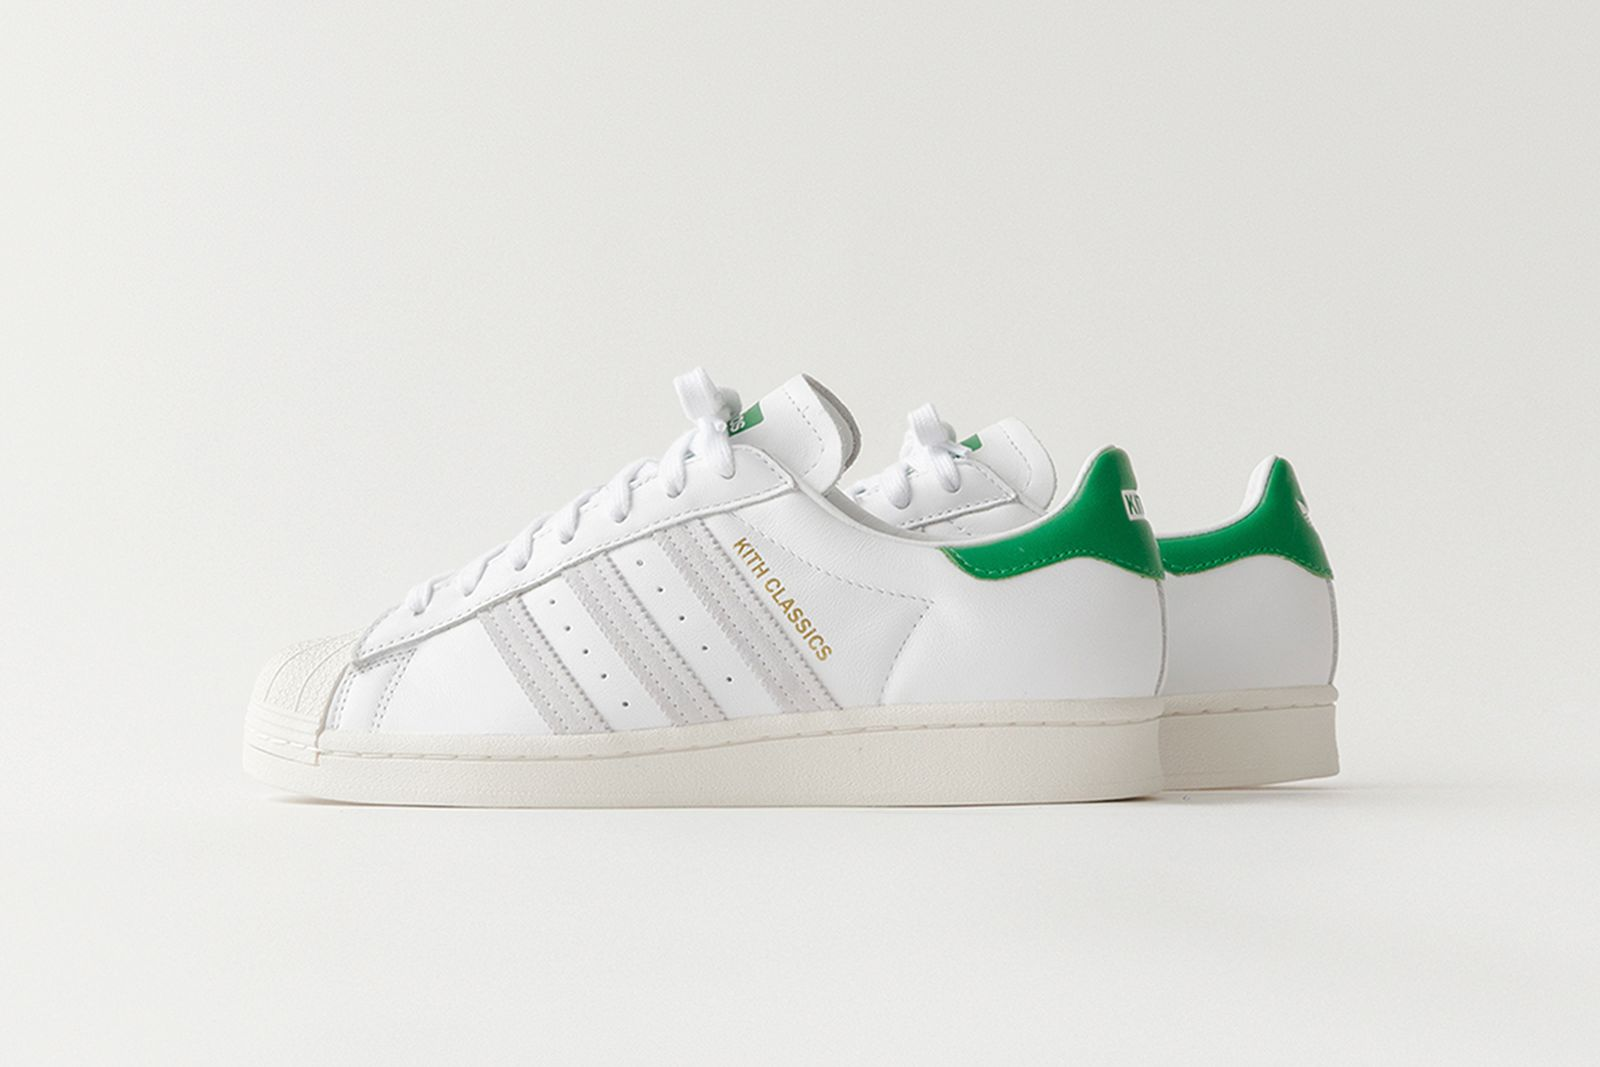 kith-adidas-summer-2021-release-info-19